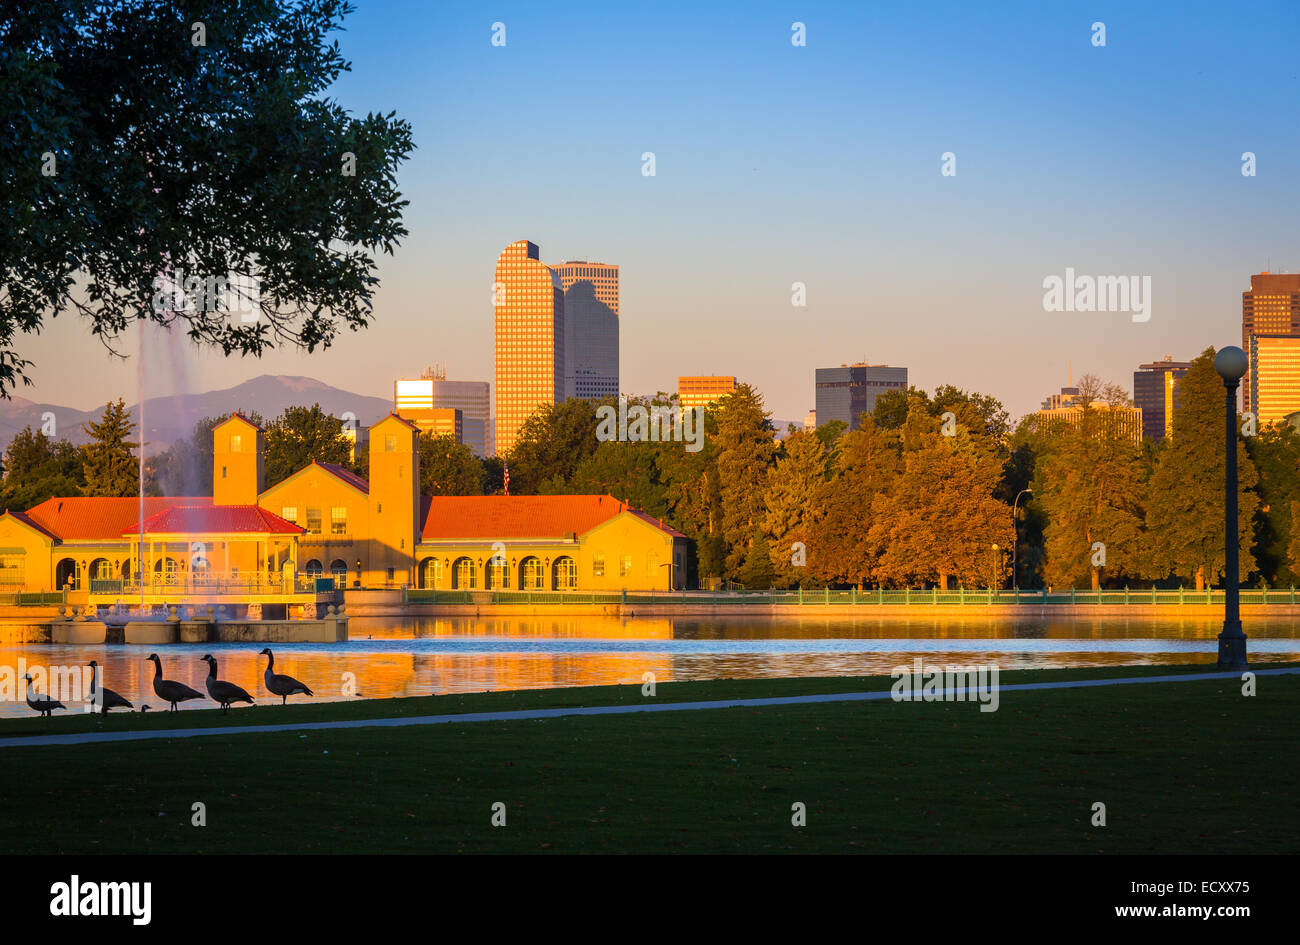 Denver is the largest city and capital of the State of Colorado. It seen here from City Park. - Stock Image